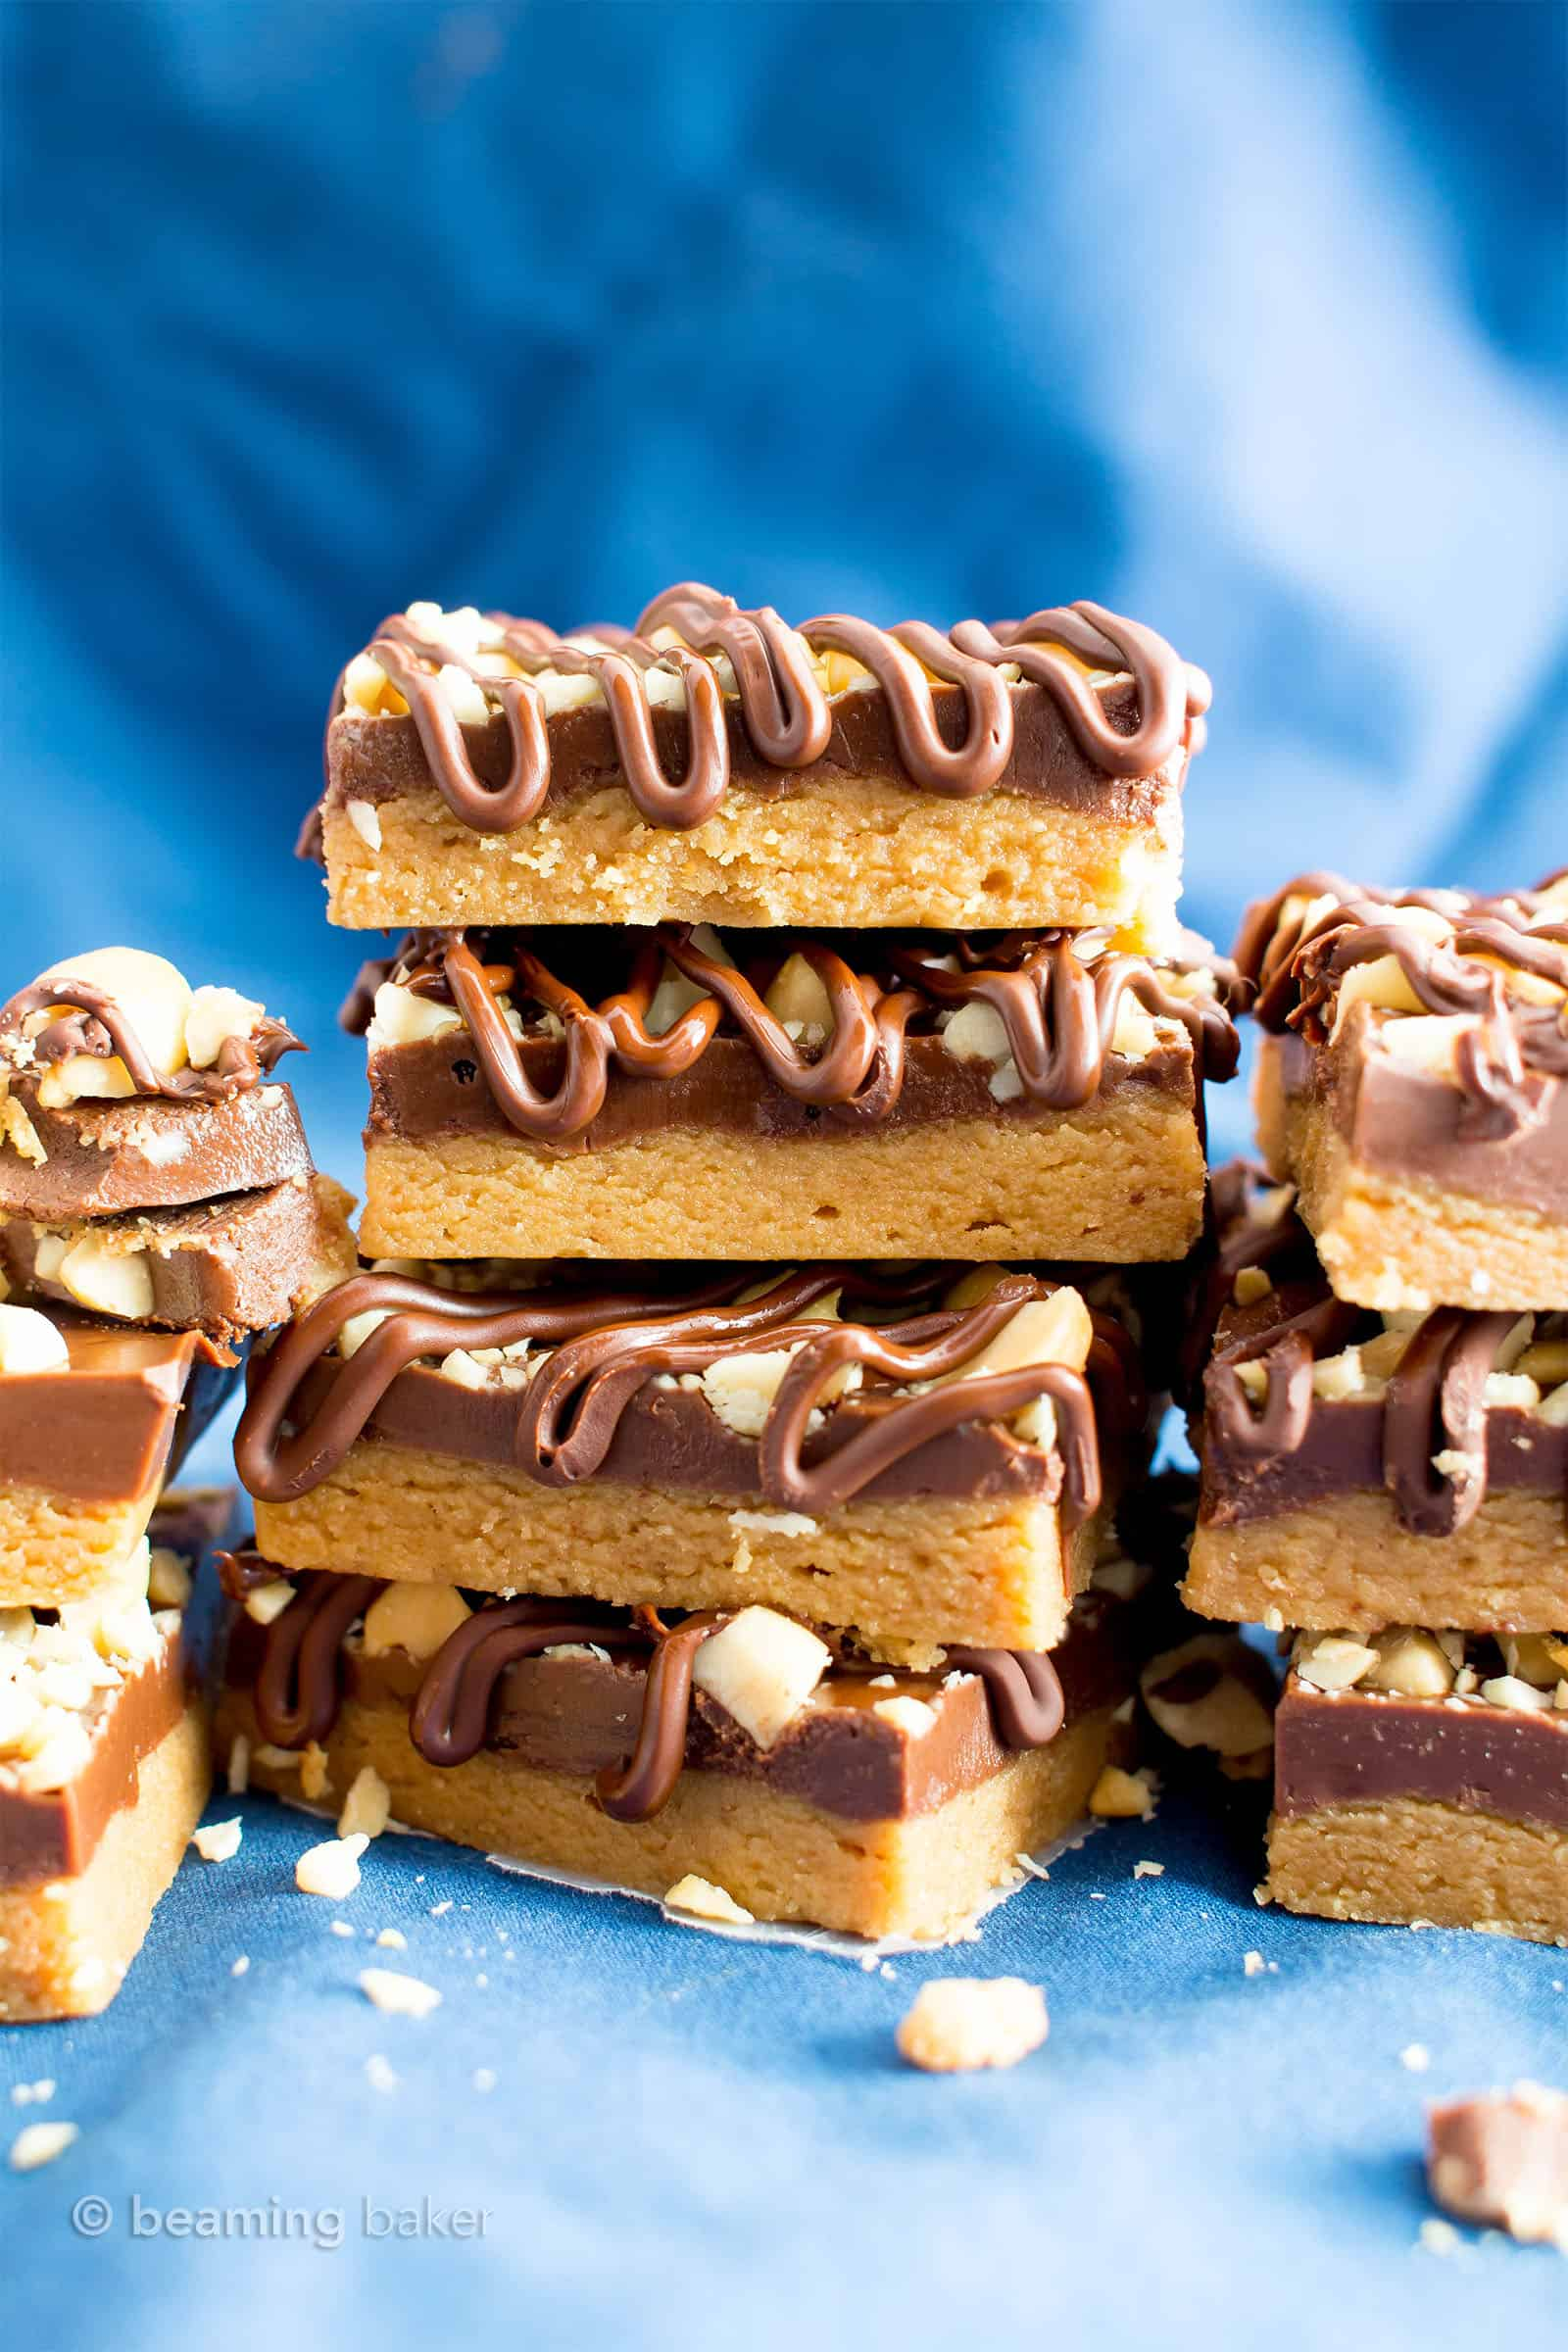 No Bake Peanut Butter Bars (Healthy): the ultimate healthy no bake peanut butter bars—just 5 ingredients, with thick layers of chocolate & peanut butter, a crunchy topping & velvety chocolate drizzle. #PeanutButterBars #Healthy #NoBake #Chocolate #PeanutButter | Recipe at BeamingBaker.com